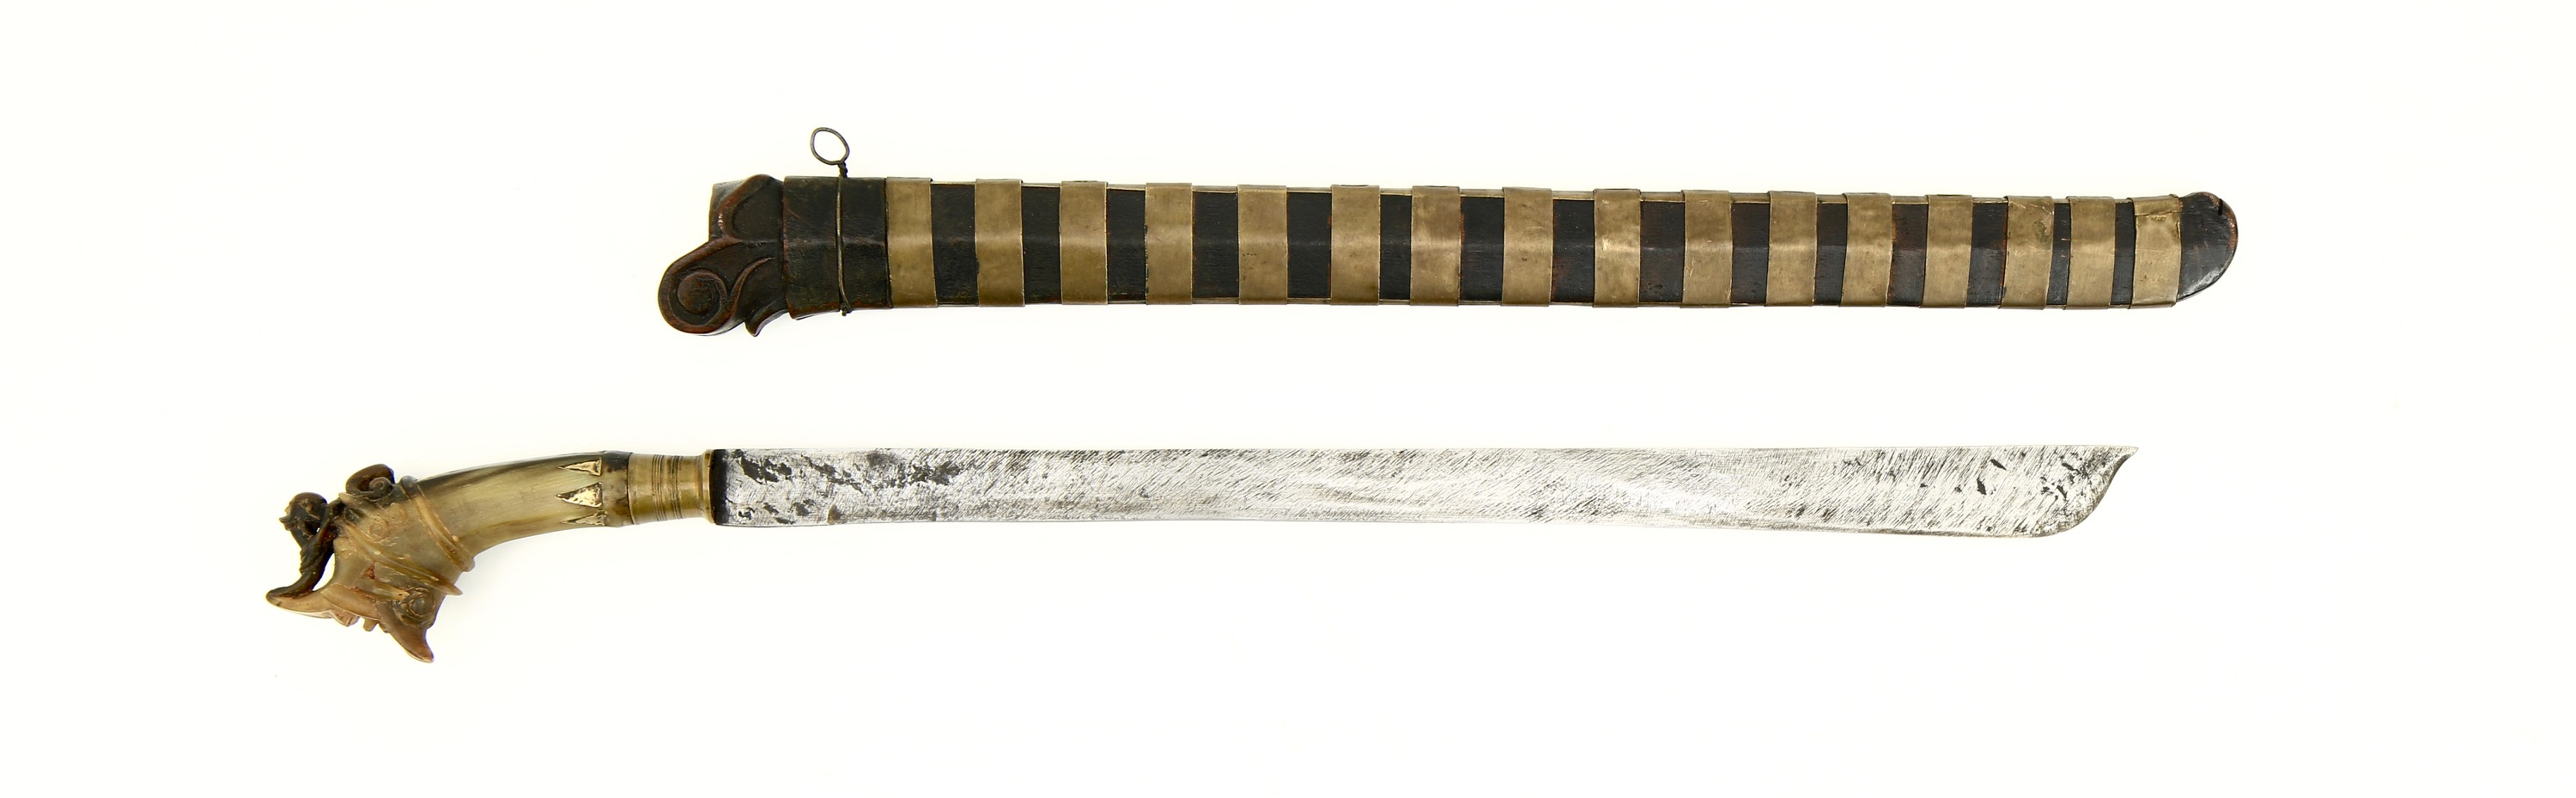 A belatu from Nias